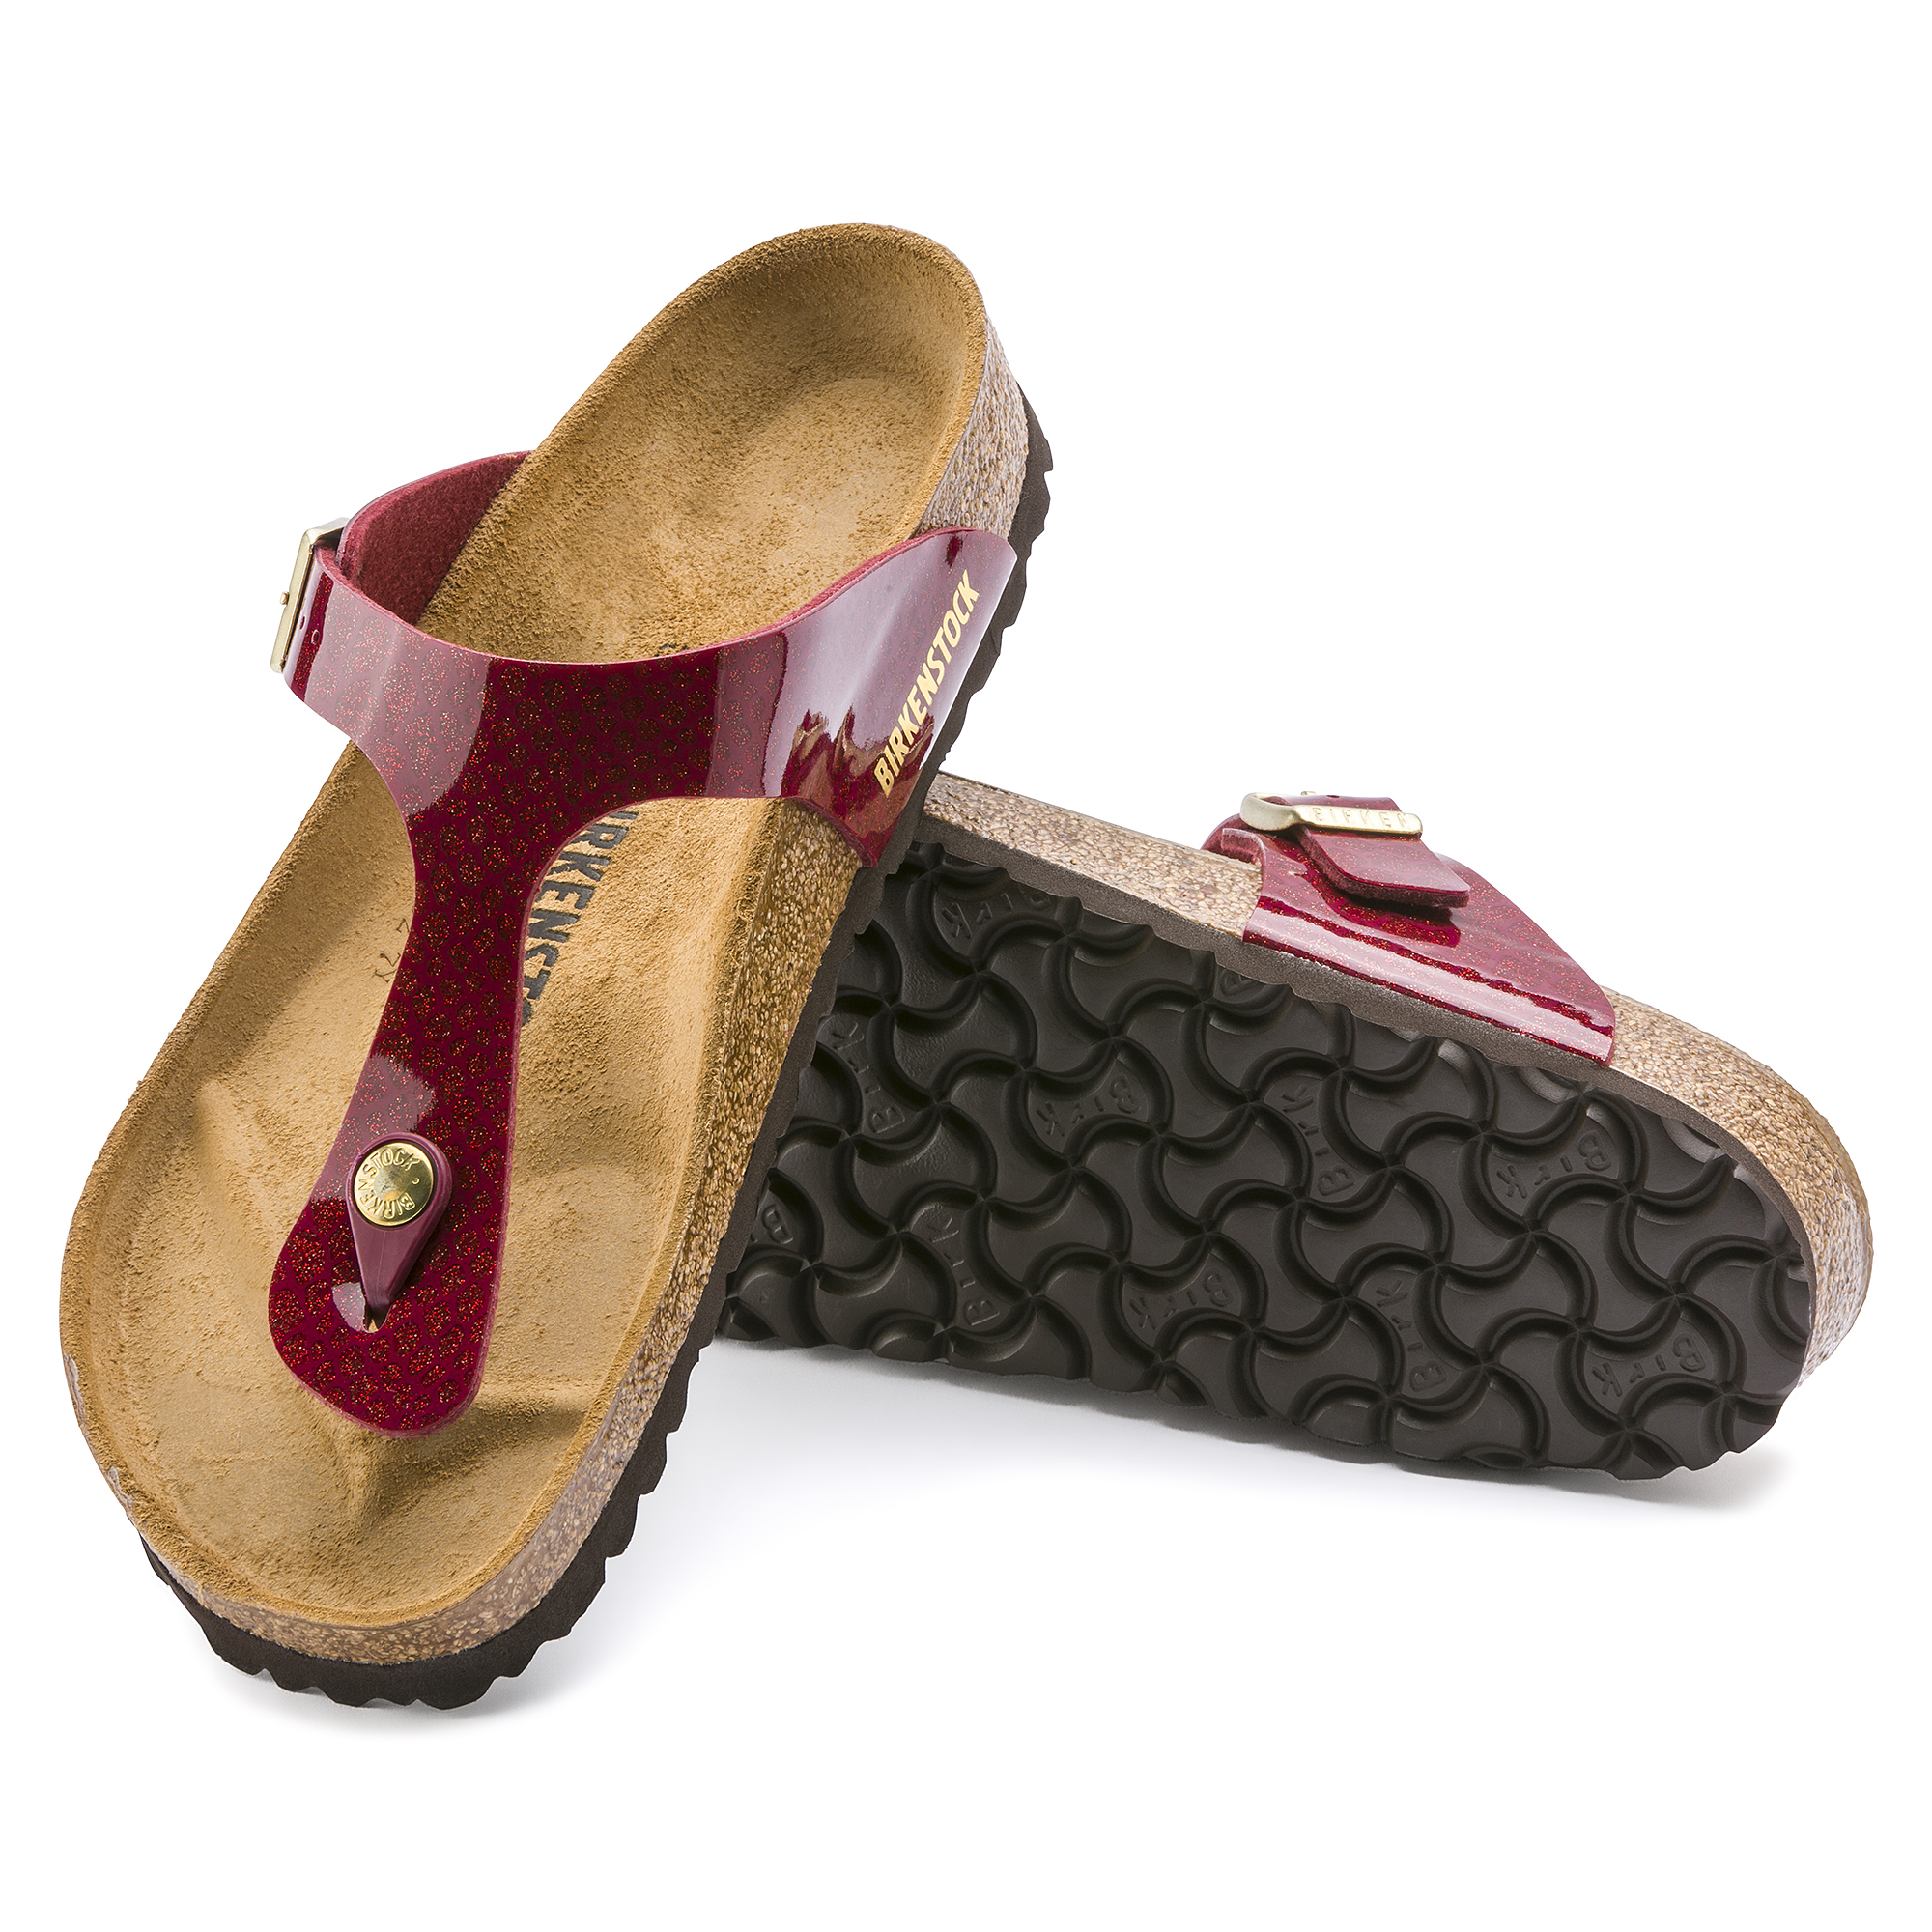 57c3cb0beb8d32 ... Gizeh Birko-Flor Magic Snake Bordeaux ...